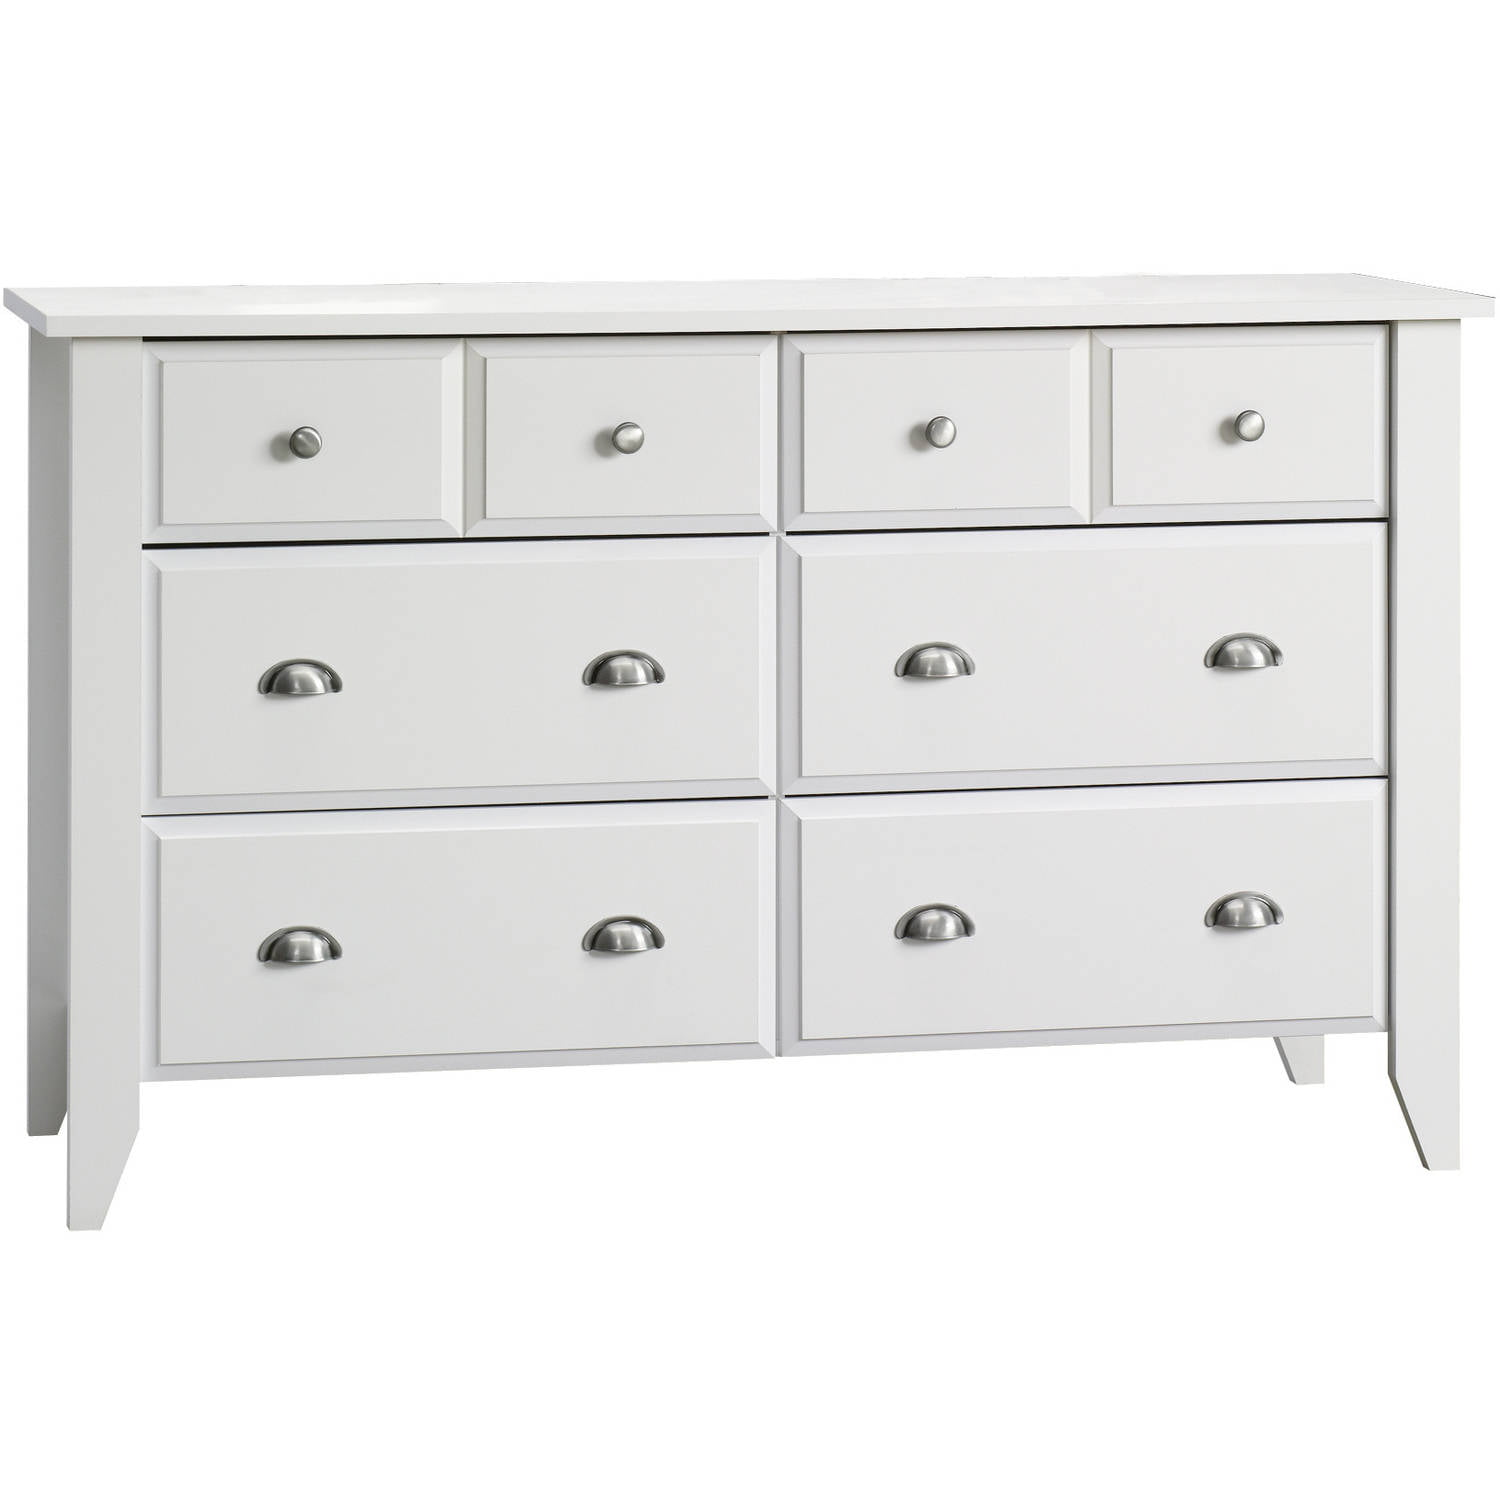 Bennett 6 Drawer Double Dresser Whitewash Wood Grain Walmart